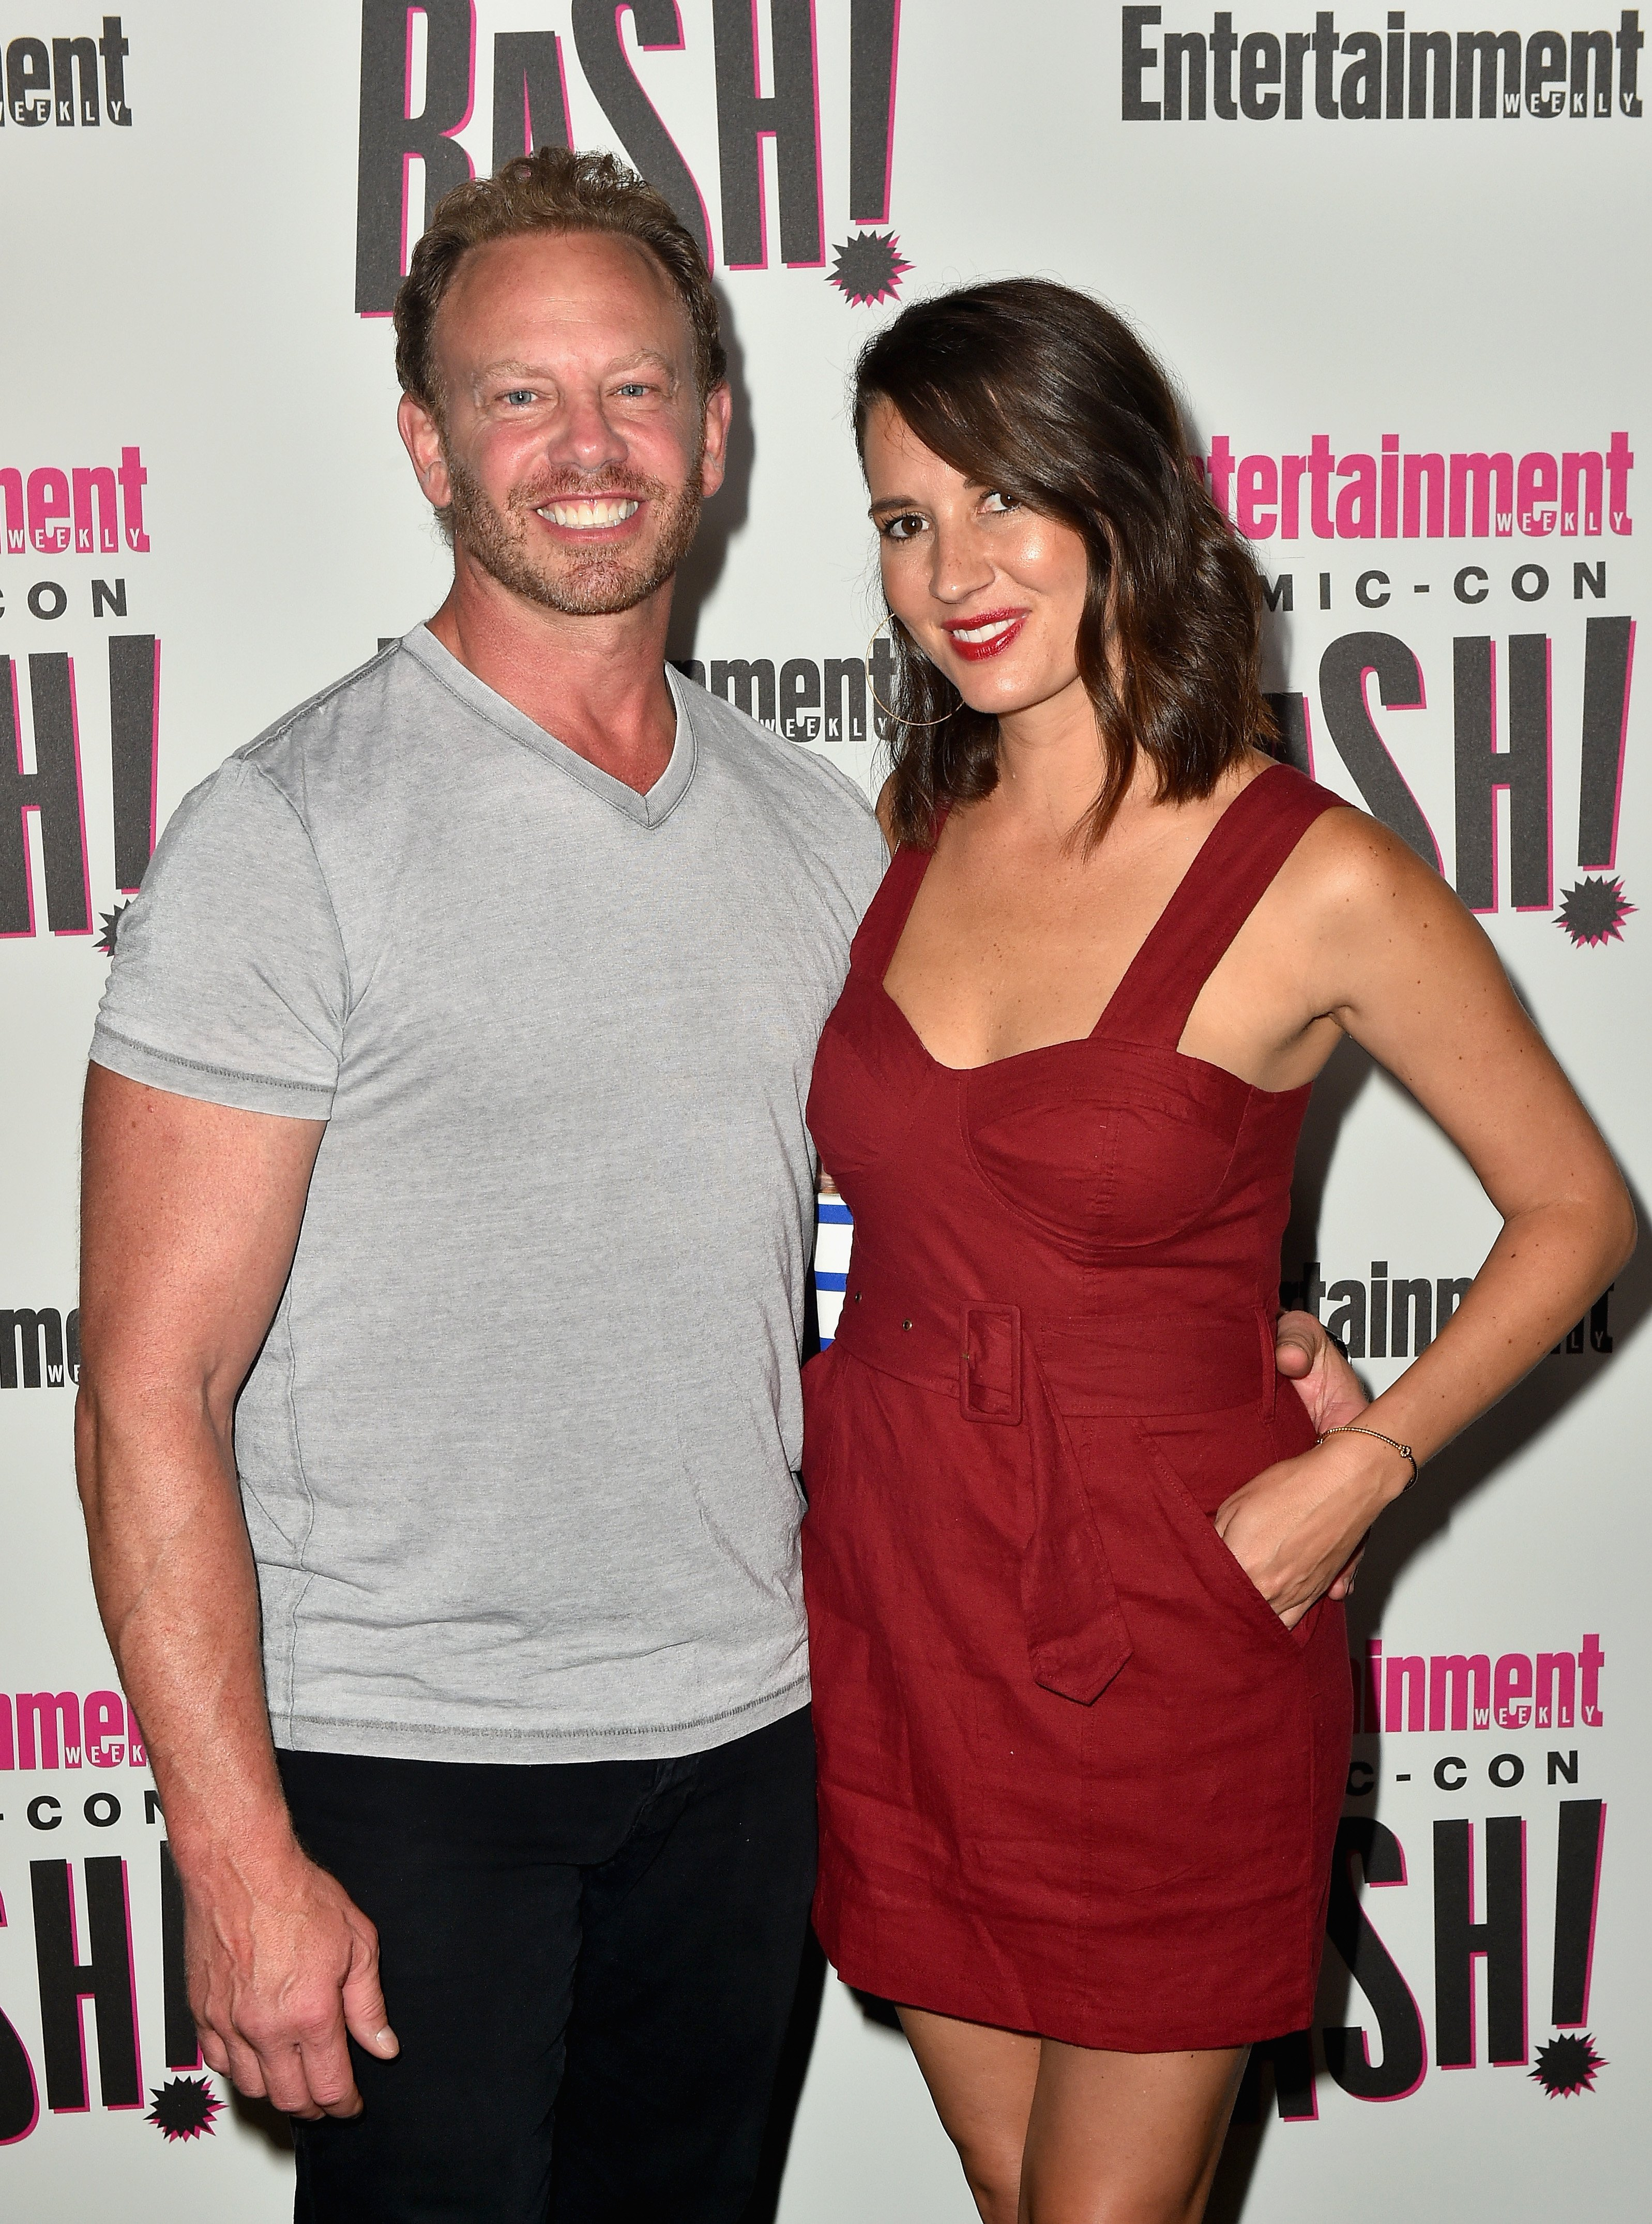 Ian Ziering (L) and Erin Ludwig attend Entertainment Weekly's Comic-Con Bash on July 21, 2018, in San Diego, California. | Source: Getty Images.